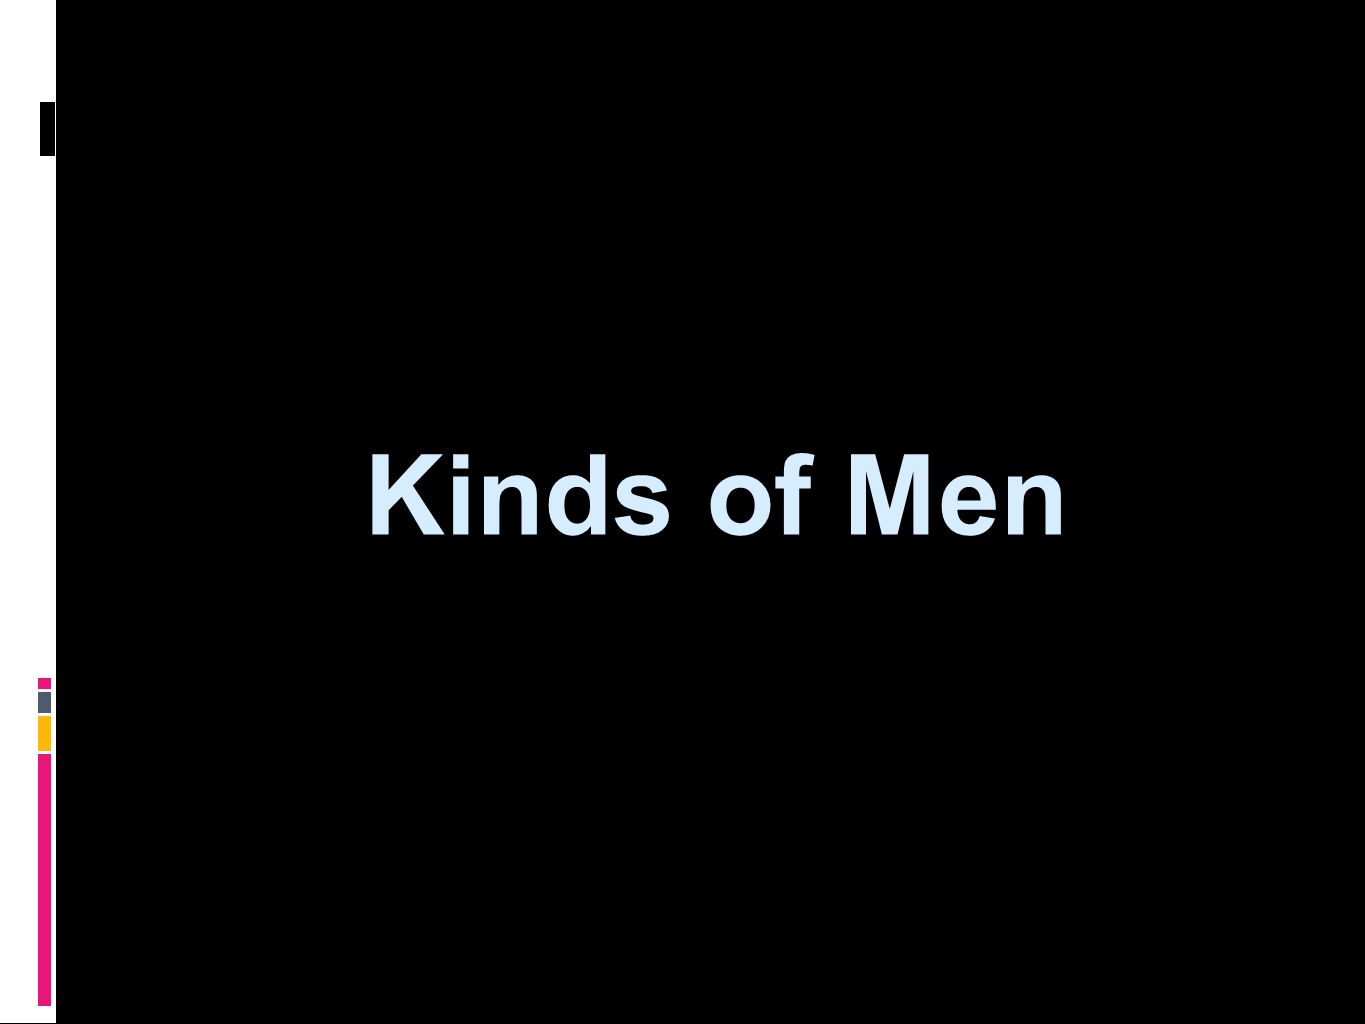 Kinds of Men